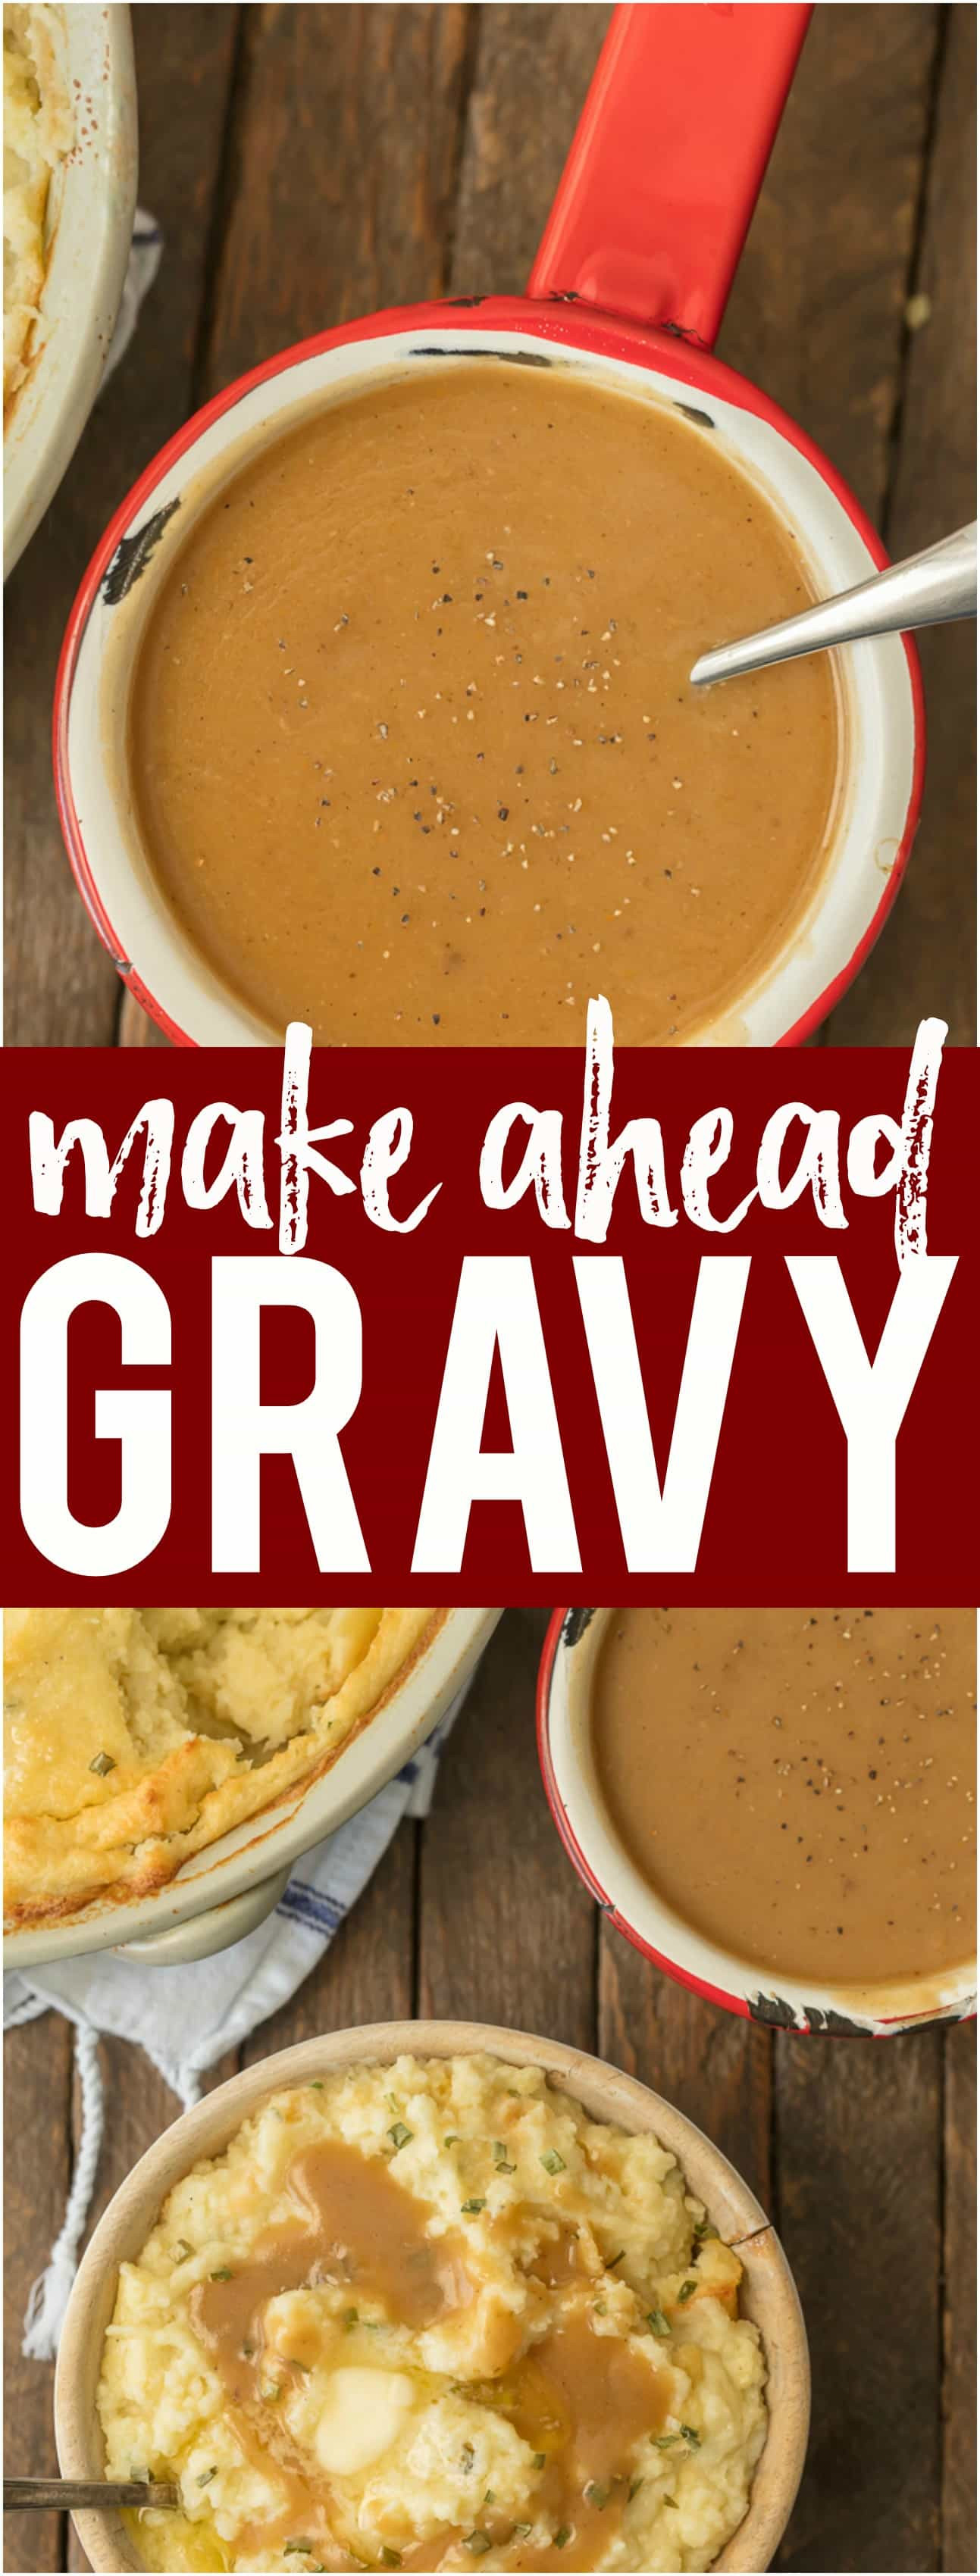 Make Ahead Gravy For Thanksgiving  Make Ahead Gravy The Cookie Rookie